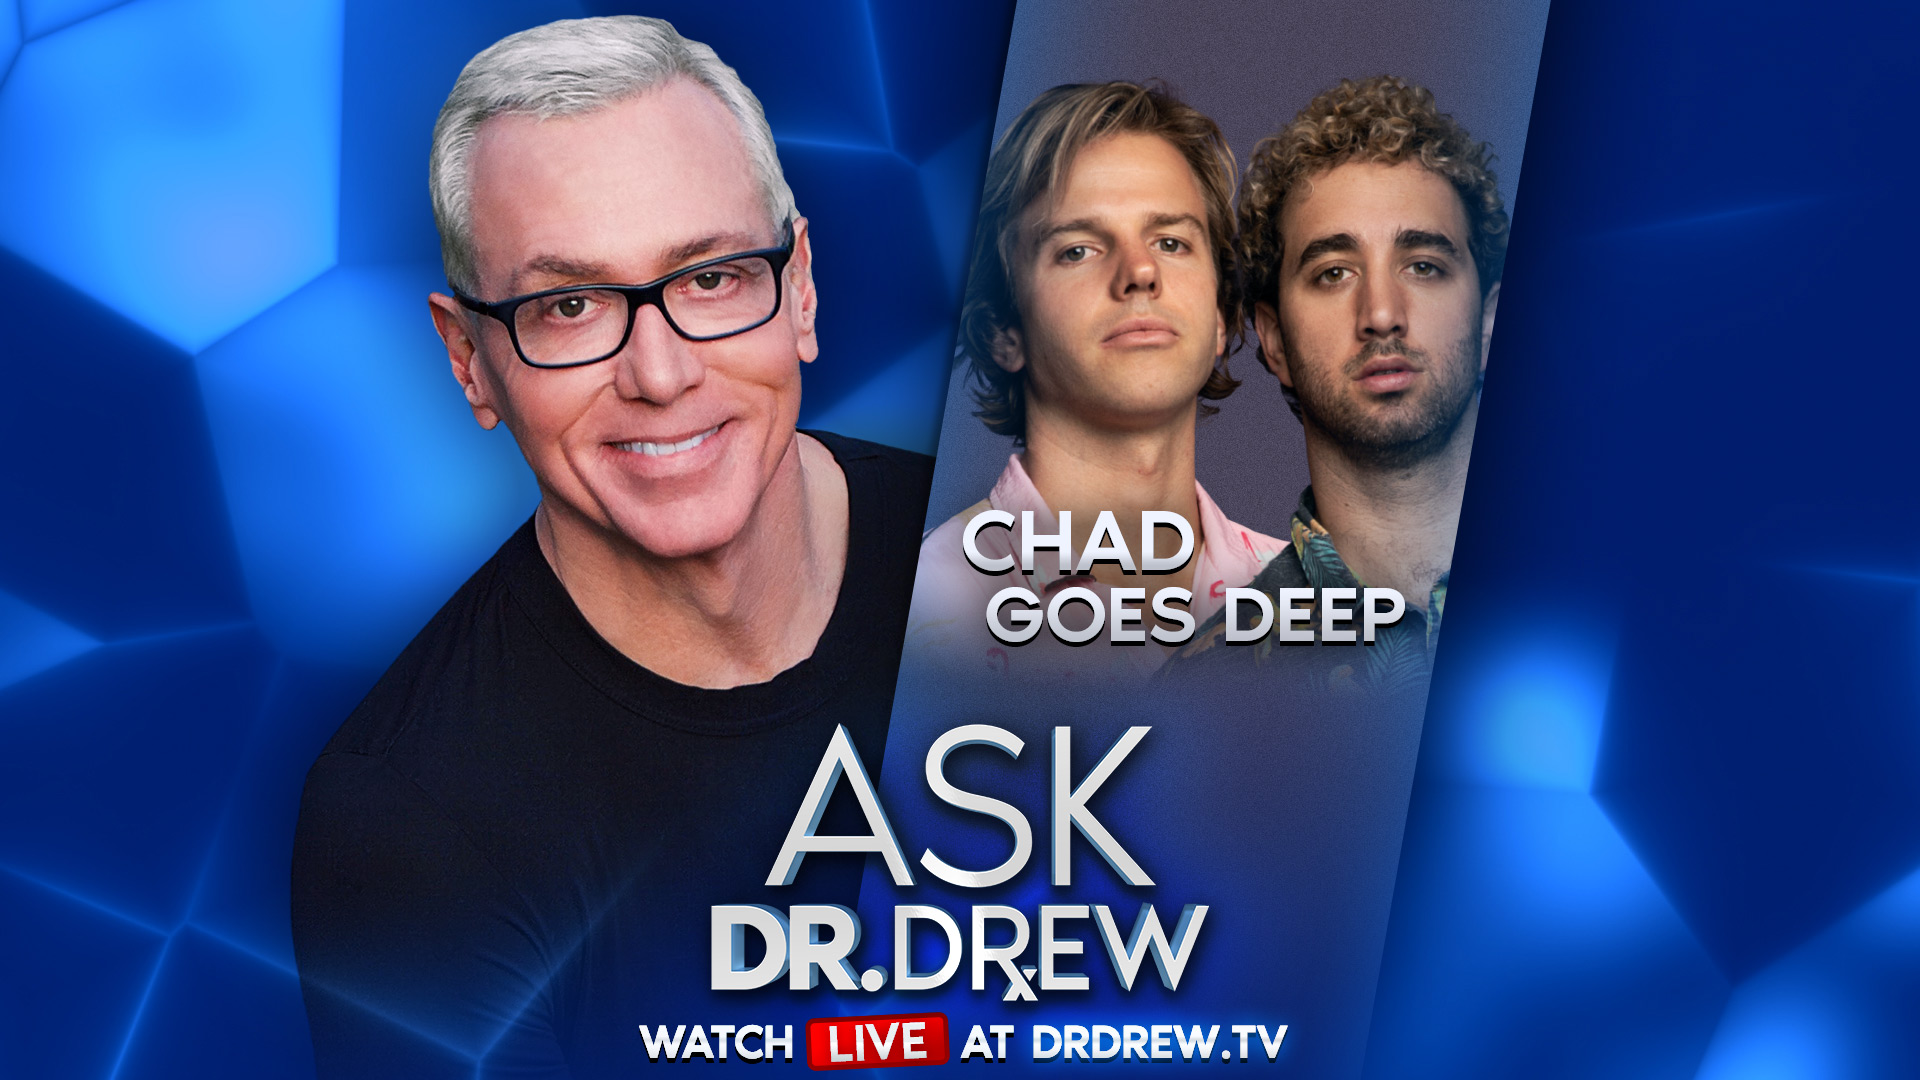 COVID-19 Pandemic Parties, Masks & More with Chad Goes Deep — Ask Dr. Drew